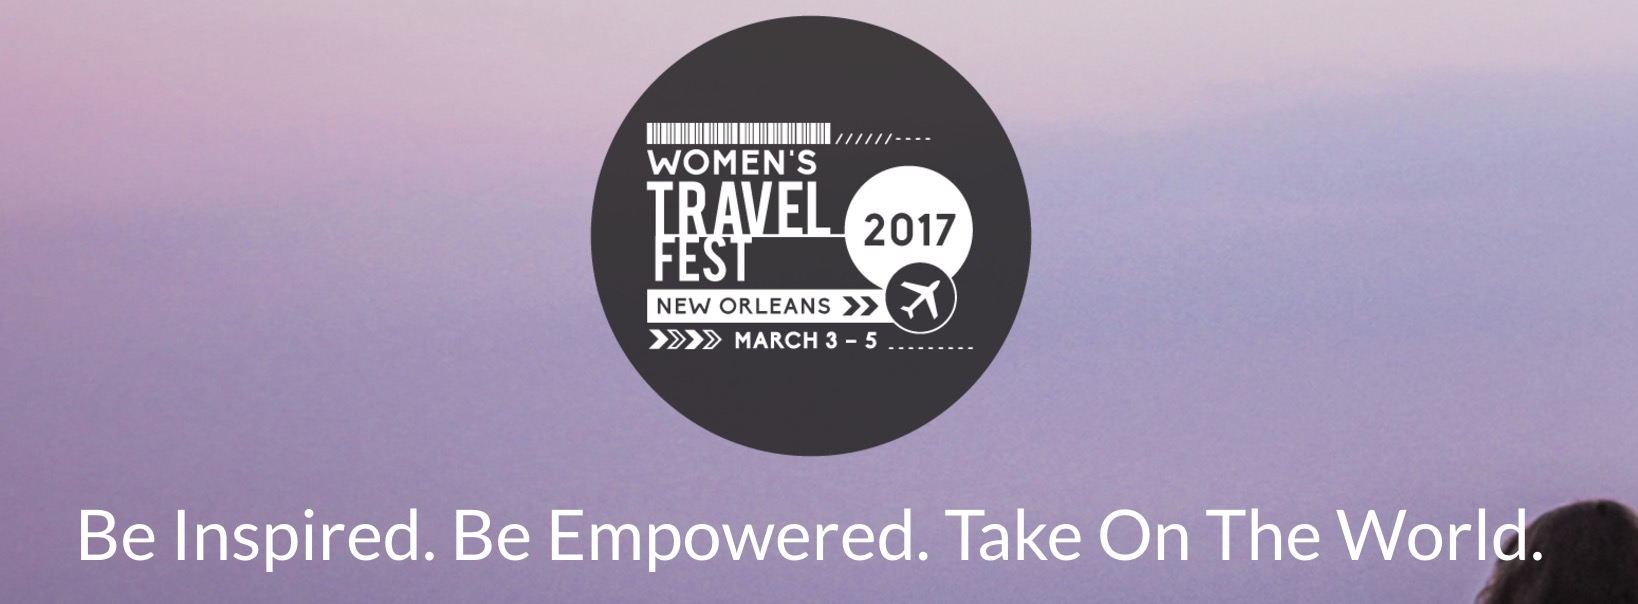 womens travel fest